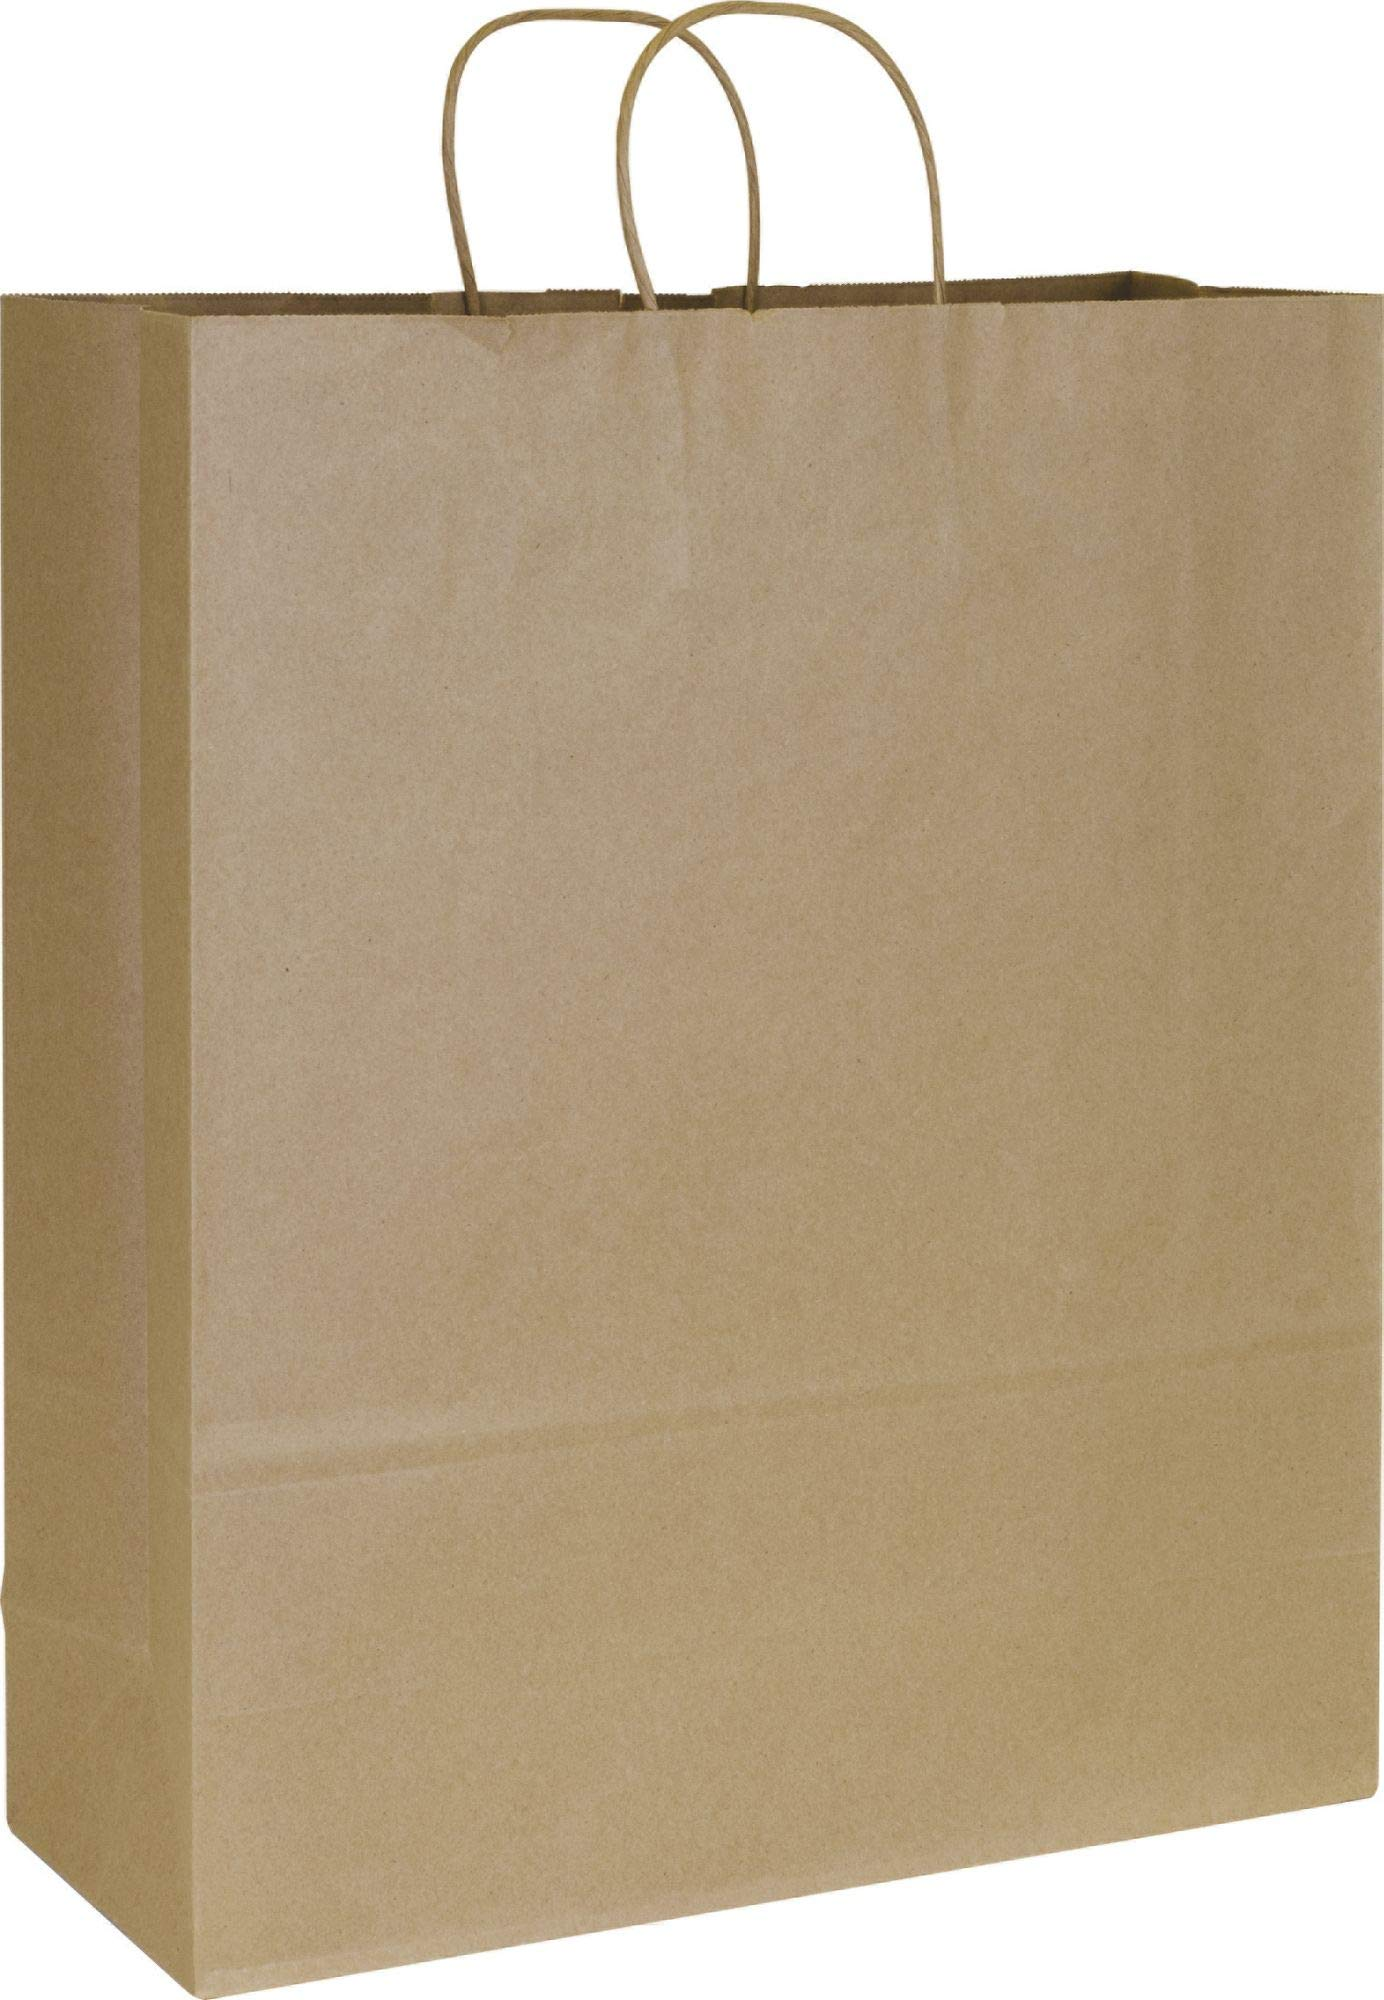 Solid Color Pattern Shopping Bags - Kraft Paper Shoppers Queen, 16 x 6 x 19'' (200 Bags) - BOWS-41-8 by Miller Supply Inc (Image #1)